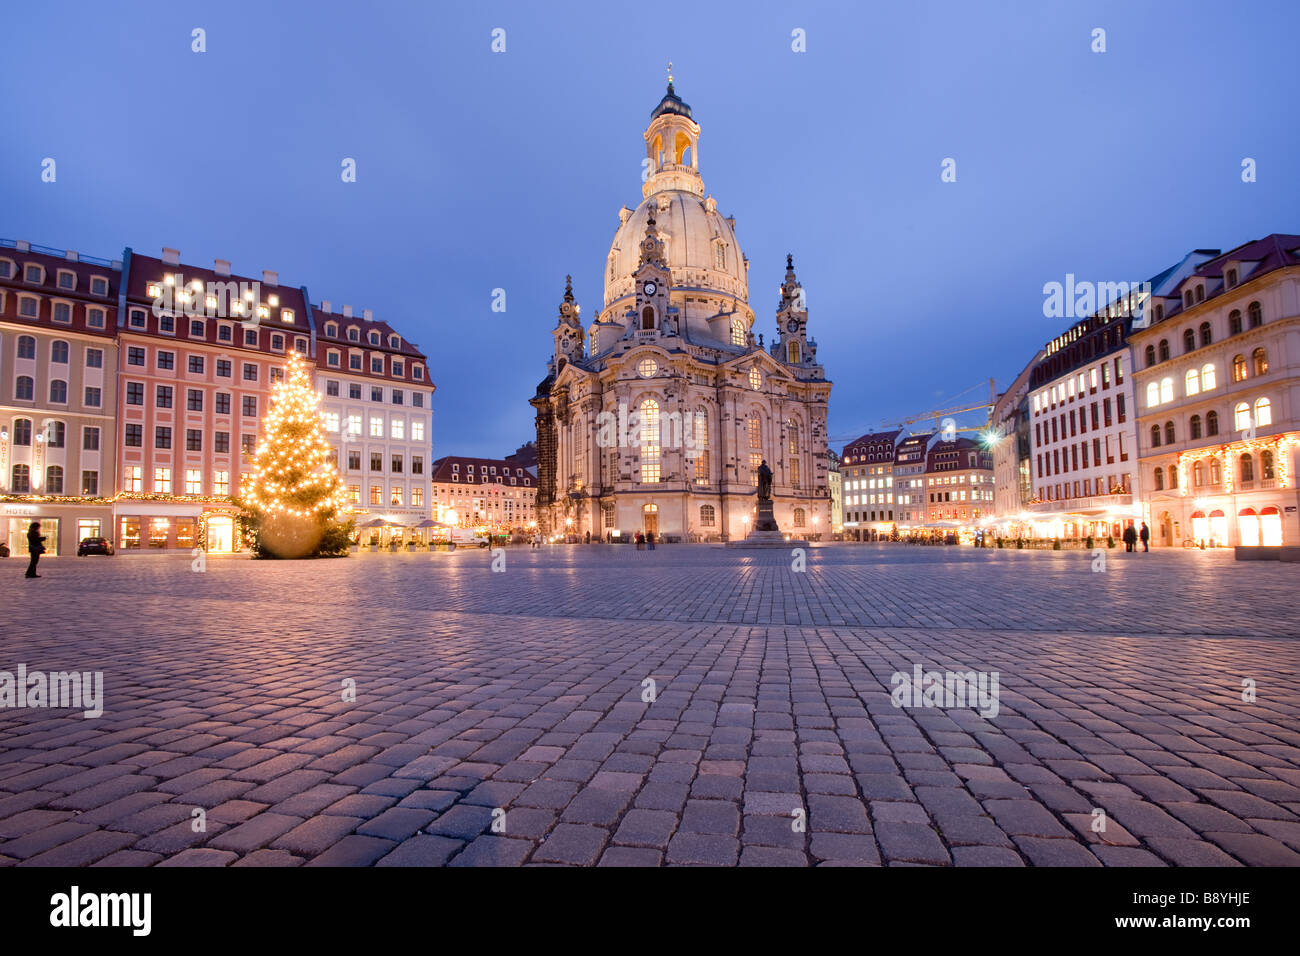 Church of our lady Frauenkirche Dresden Saxony Germany Stock Photo